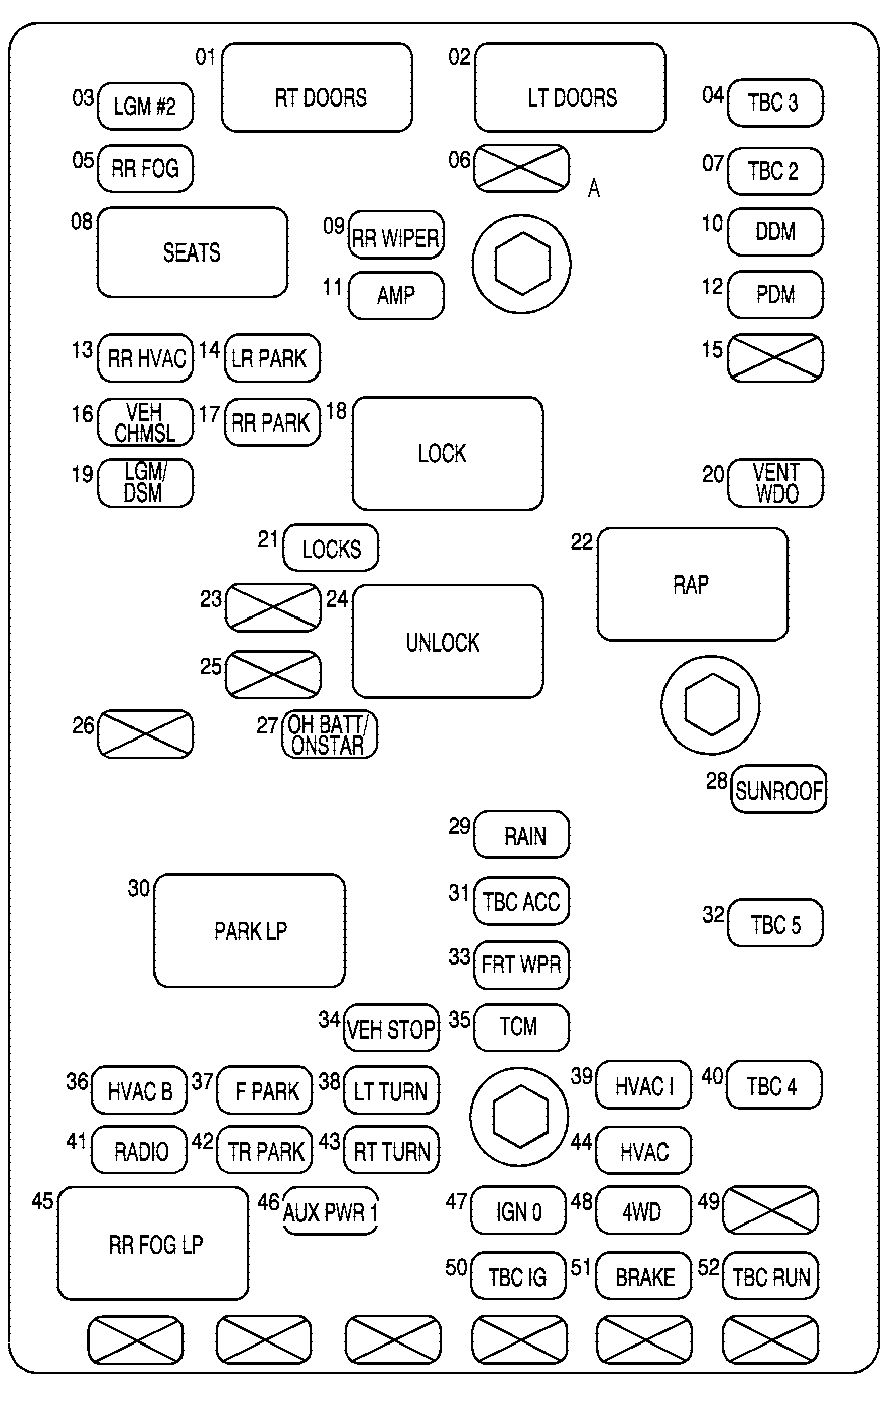 Gmc Envoy 2006 Fuse Box Diagram Auto Genius Chrysler Voyager Radio Mk2 Rear Underseat Block Xl